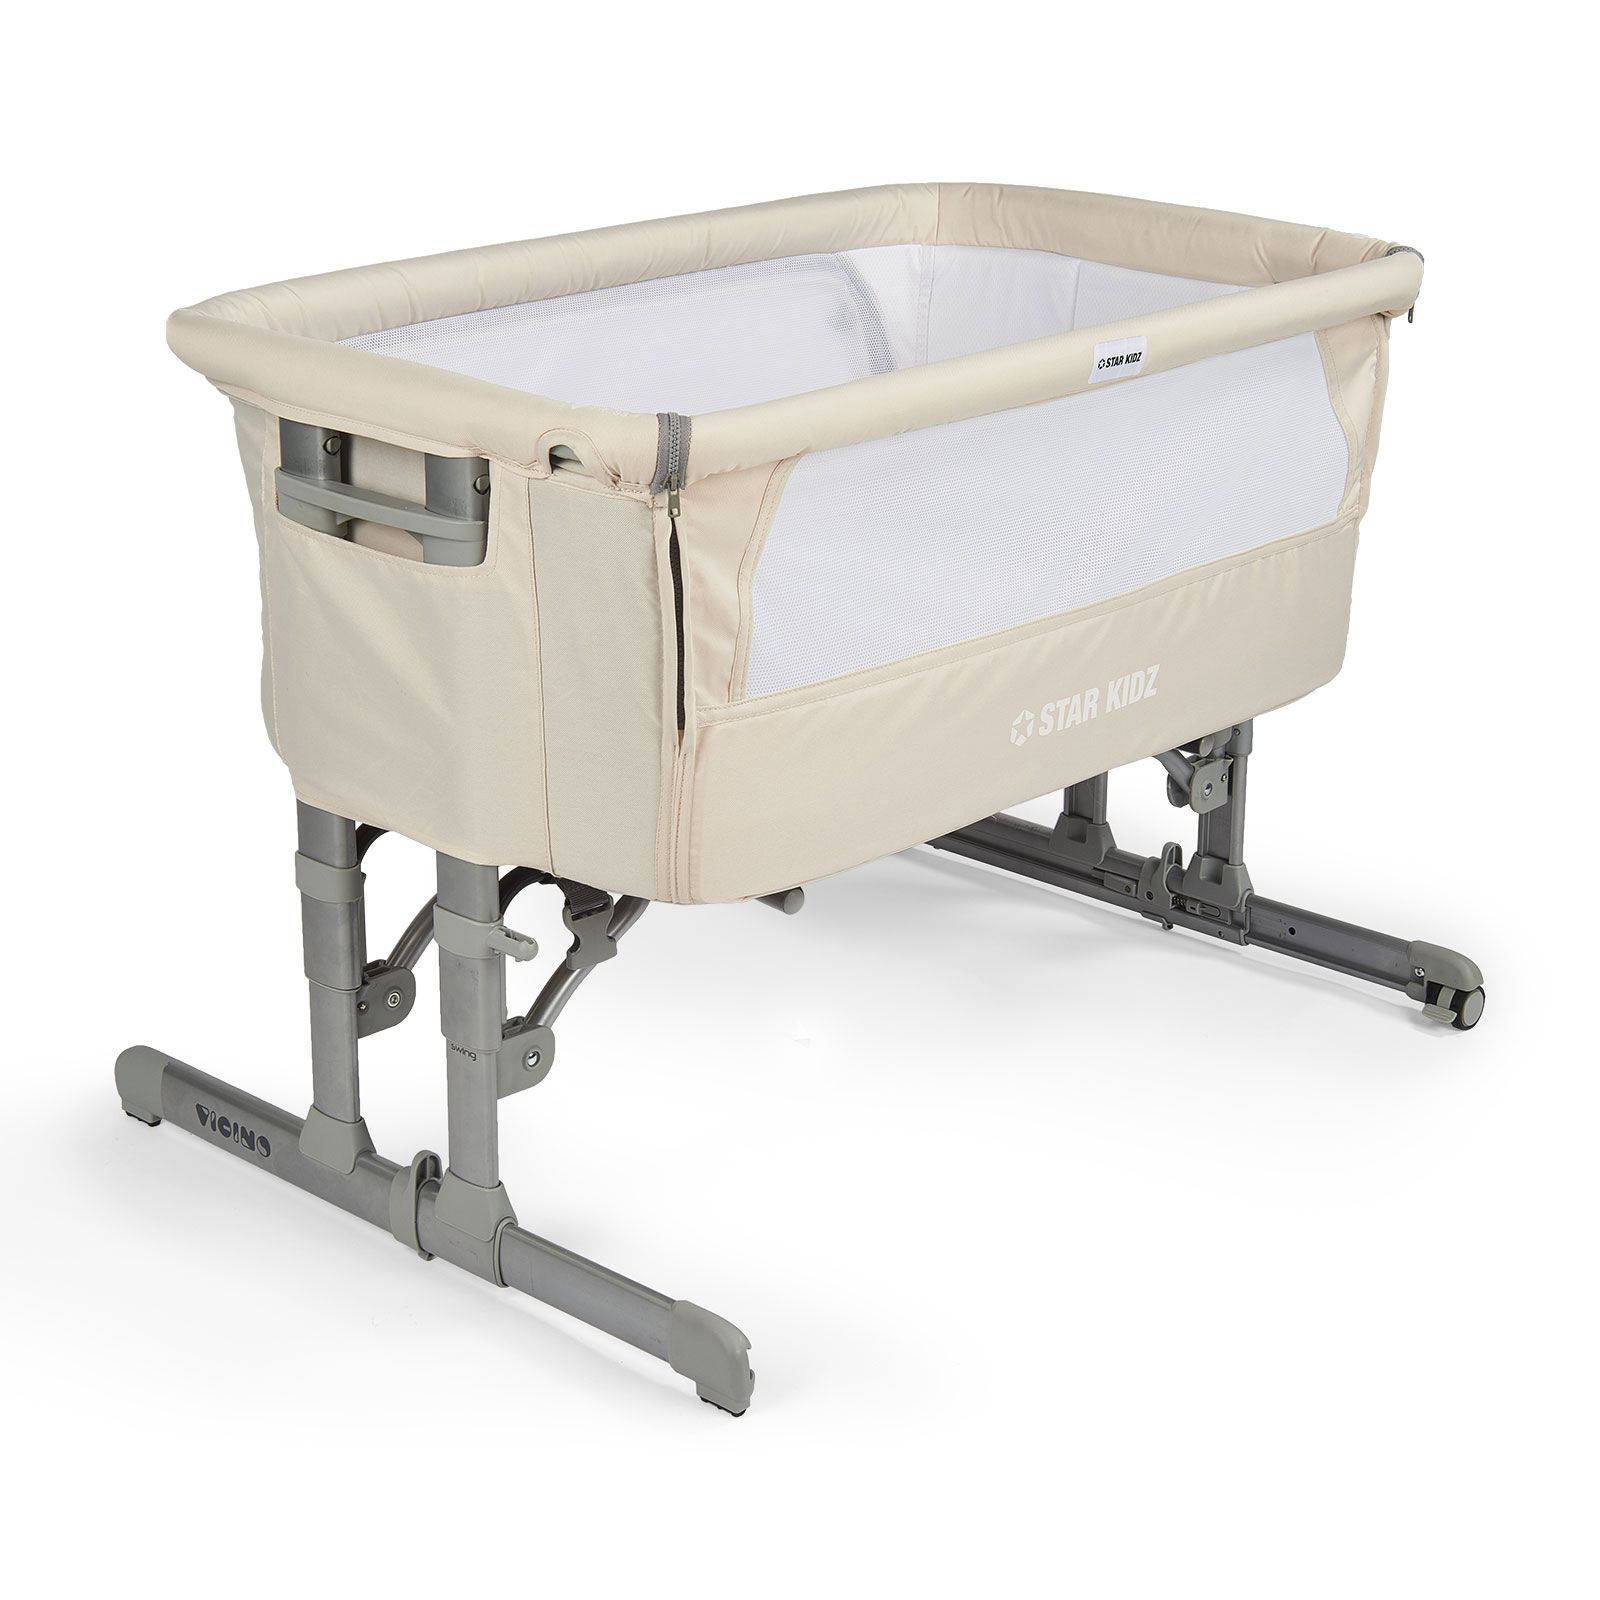 Newborn Bassinet Reflux The Infant Rocker Bassinet Is Lightweight And The 2 Swivel